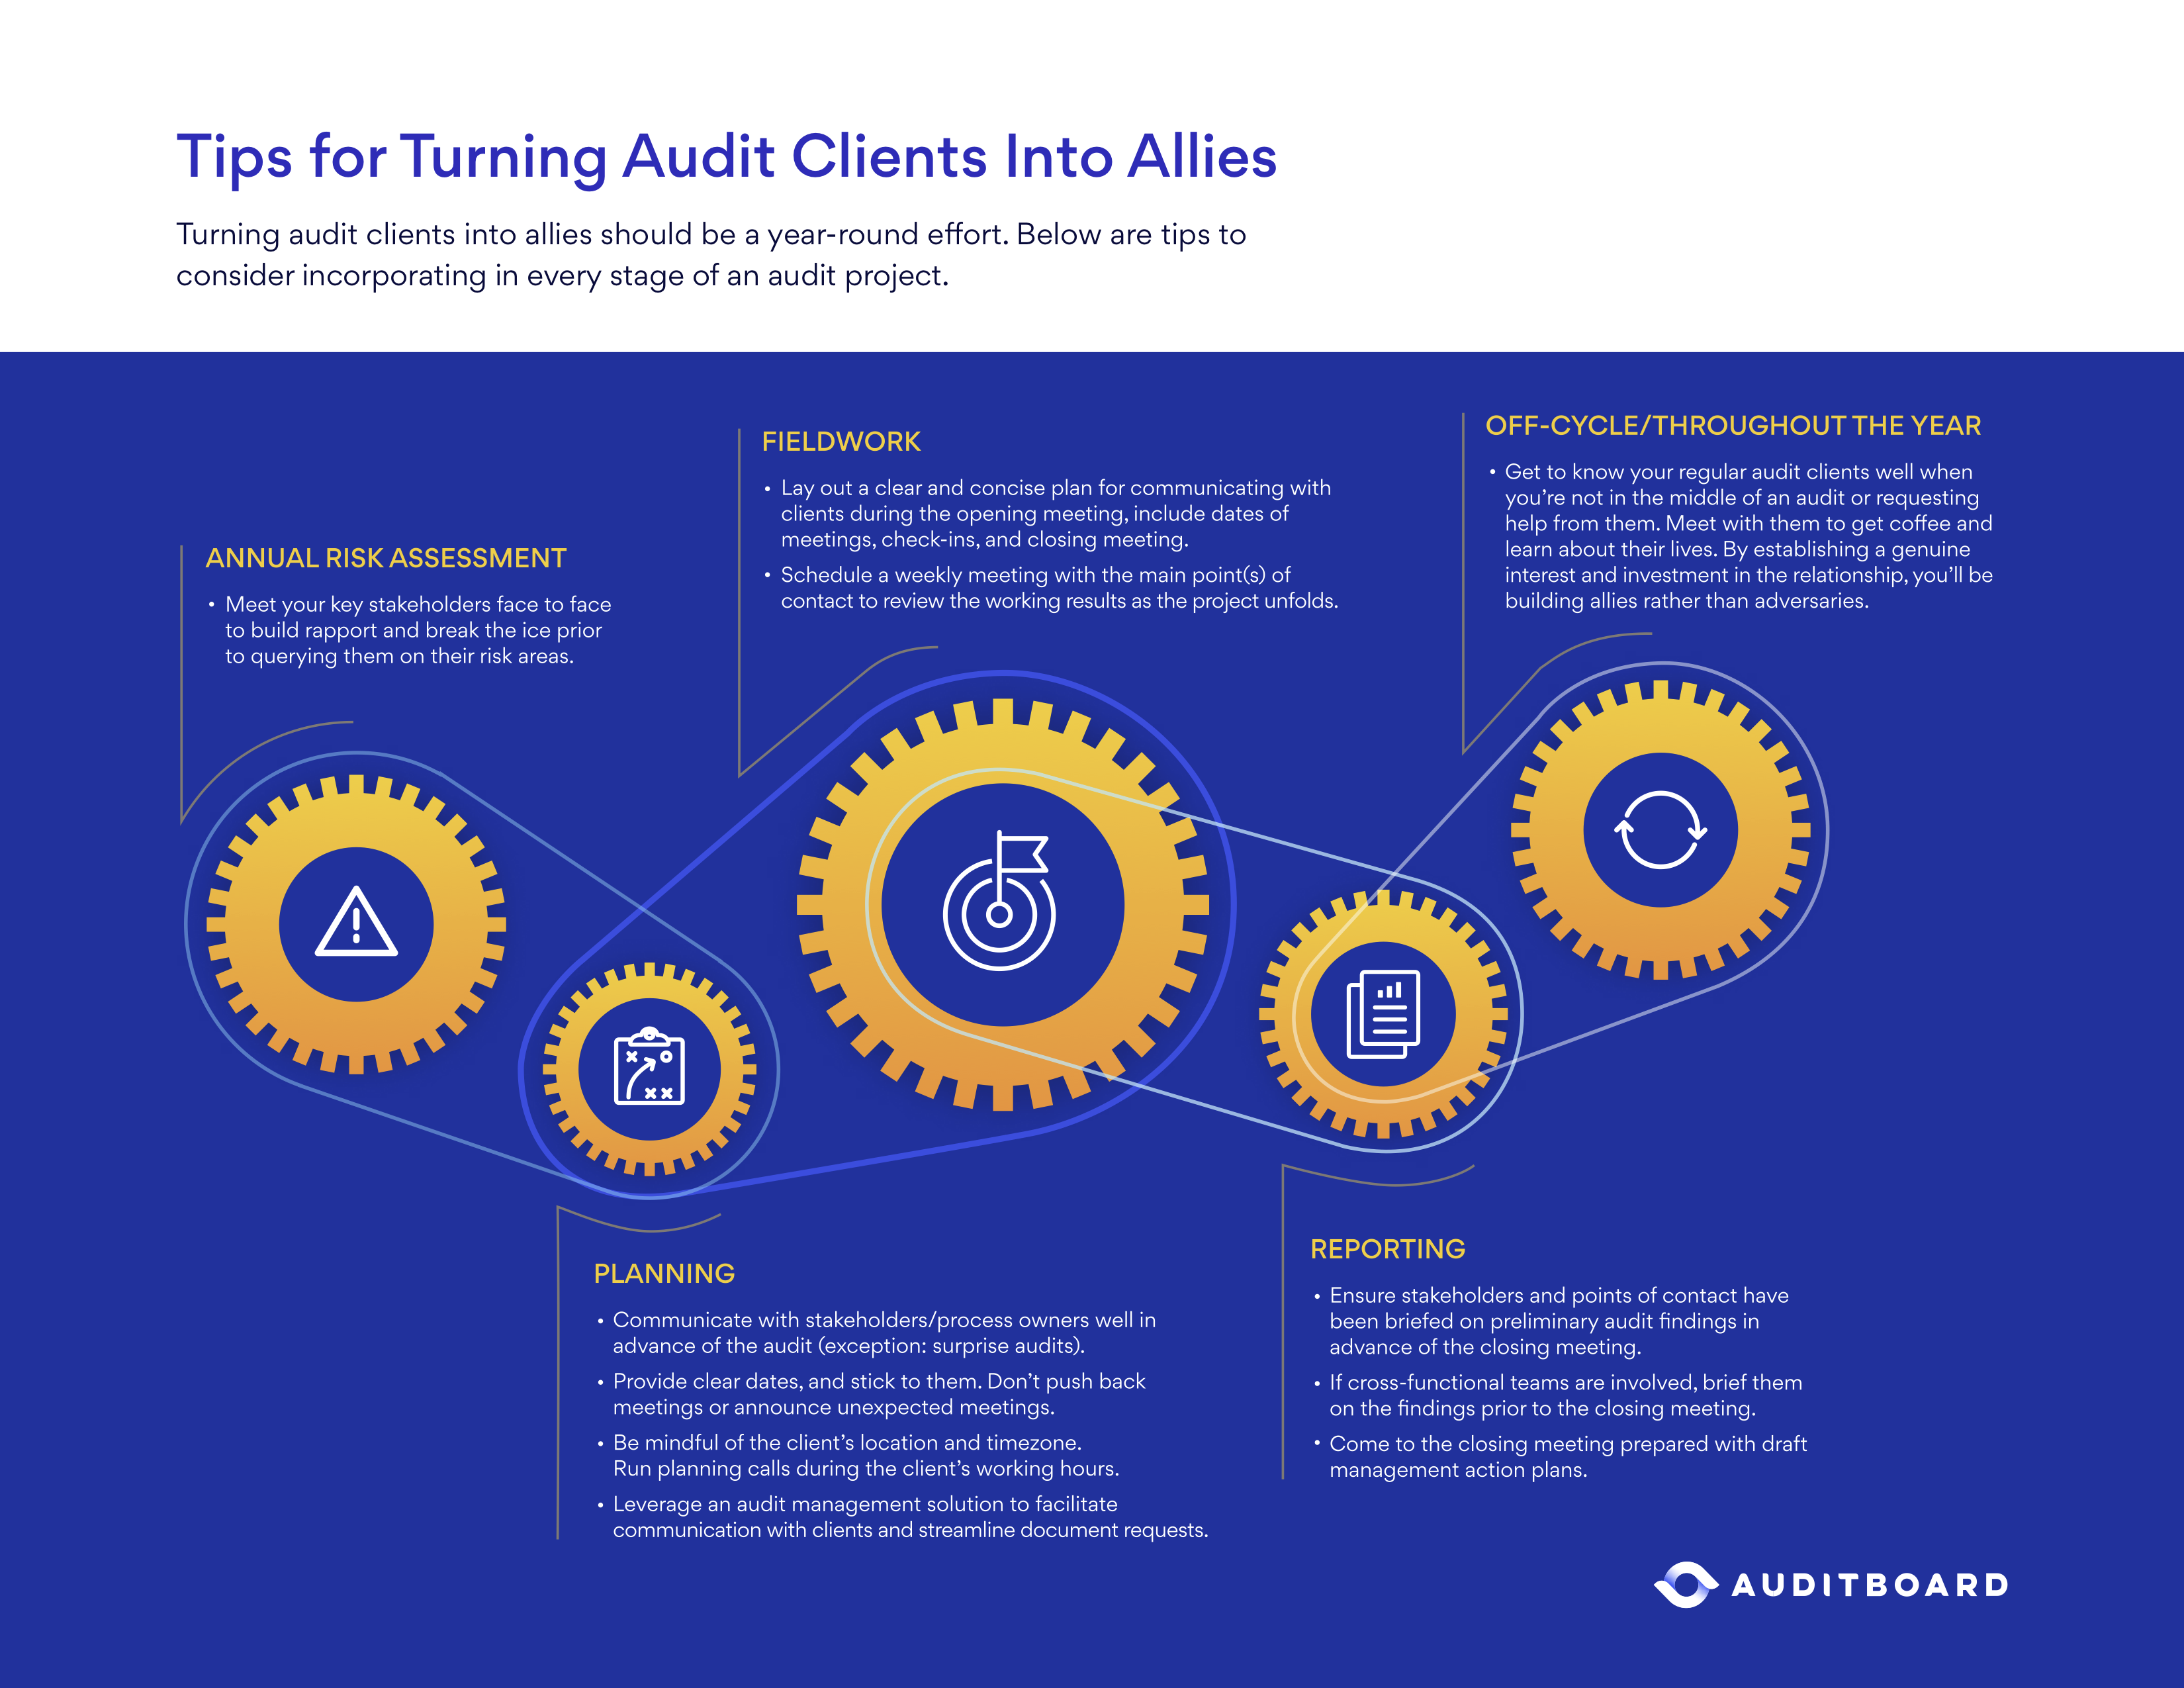 Tips for Turning Audit Clients into Allies